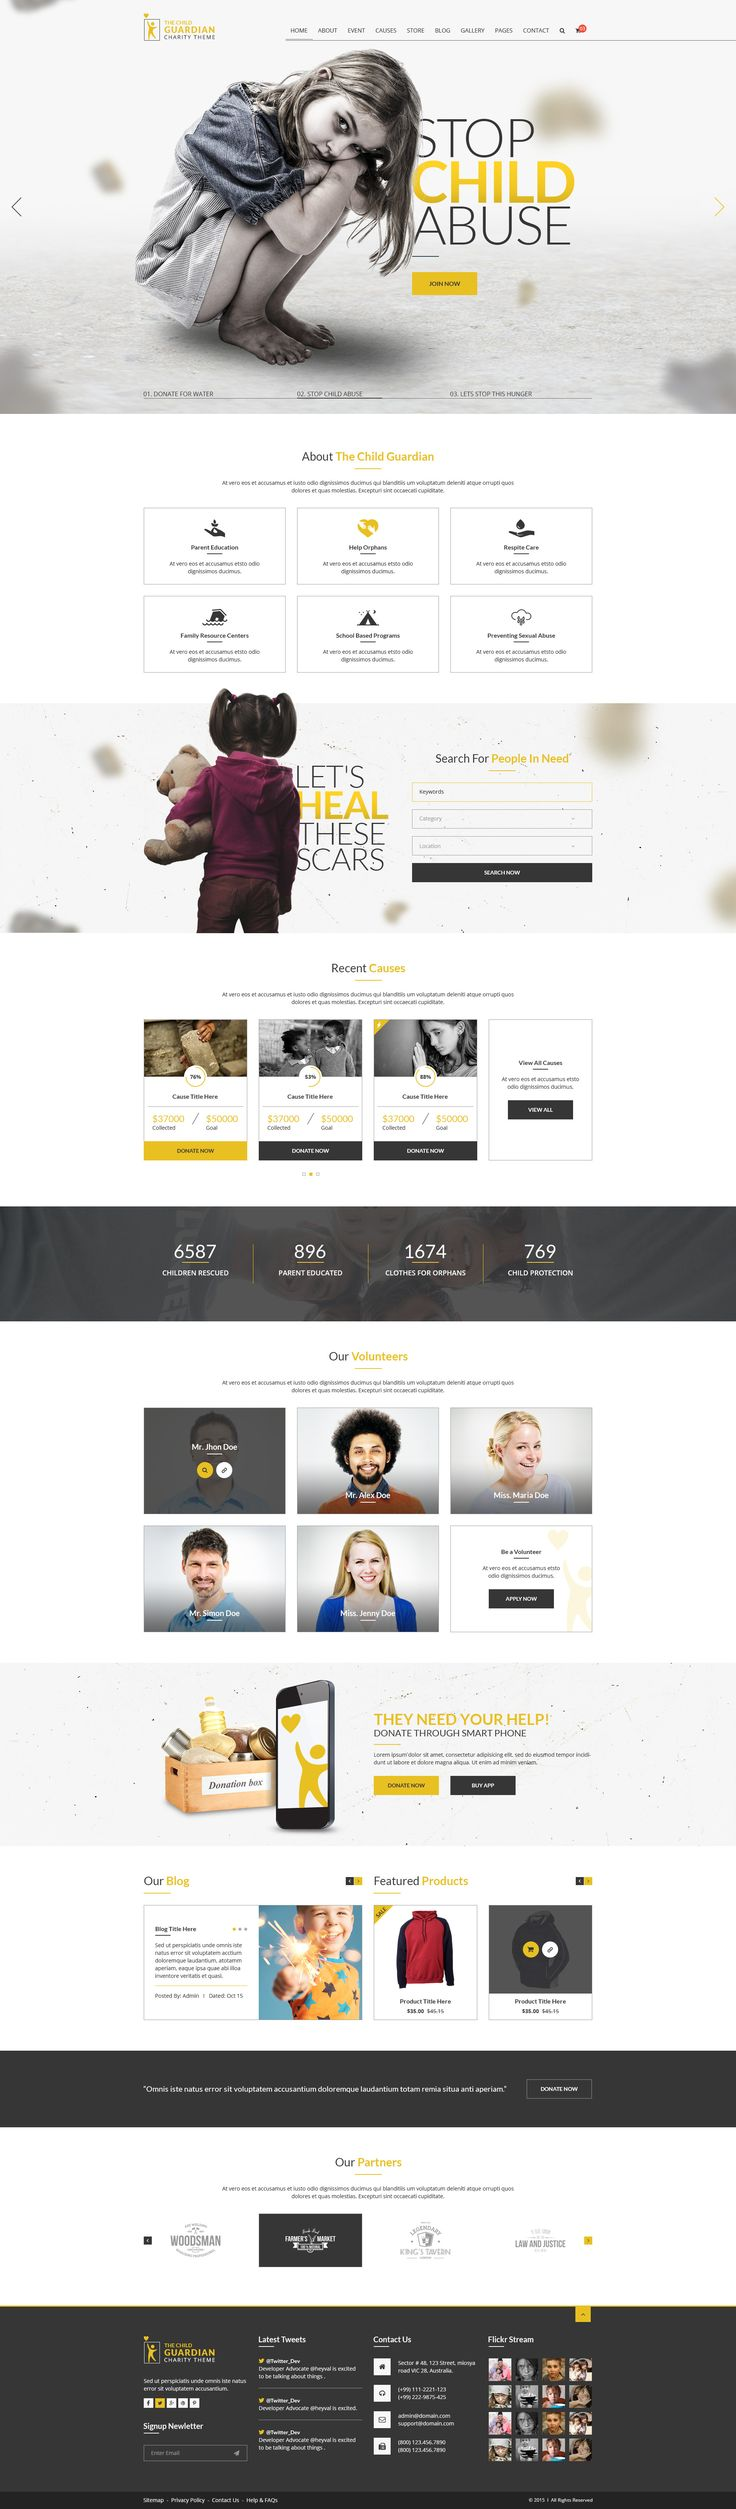 The Child Guardian is a modern, unique and clean design for charities and not for profit organizations #PSD #Template. It is a contemporary design and has all the elements that any charity would like in their website including the events and cause page.